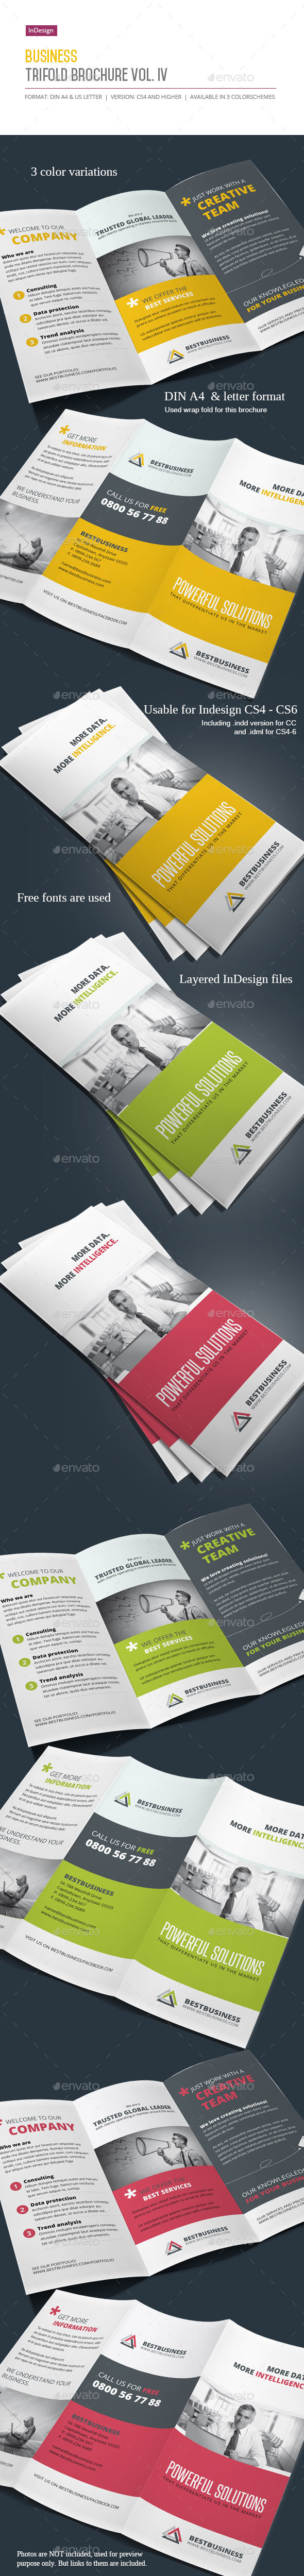 Business Trifold Brochure Vol. IV - Corporate Brochures